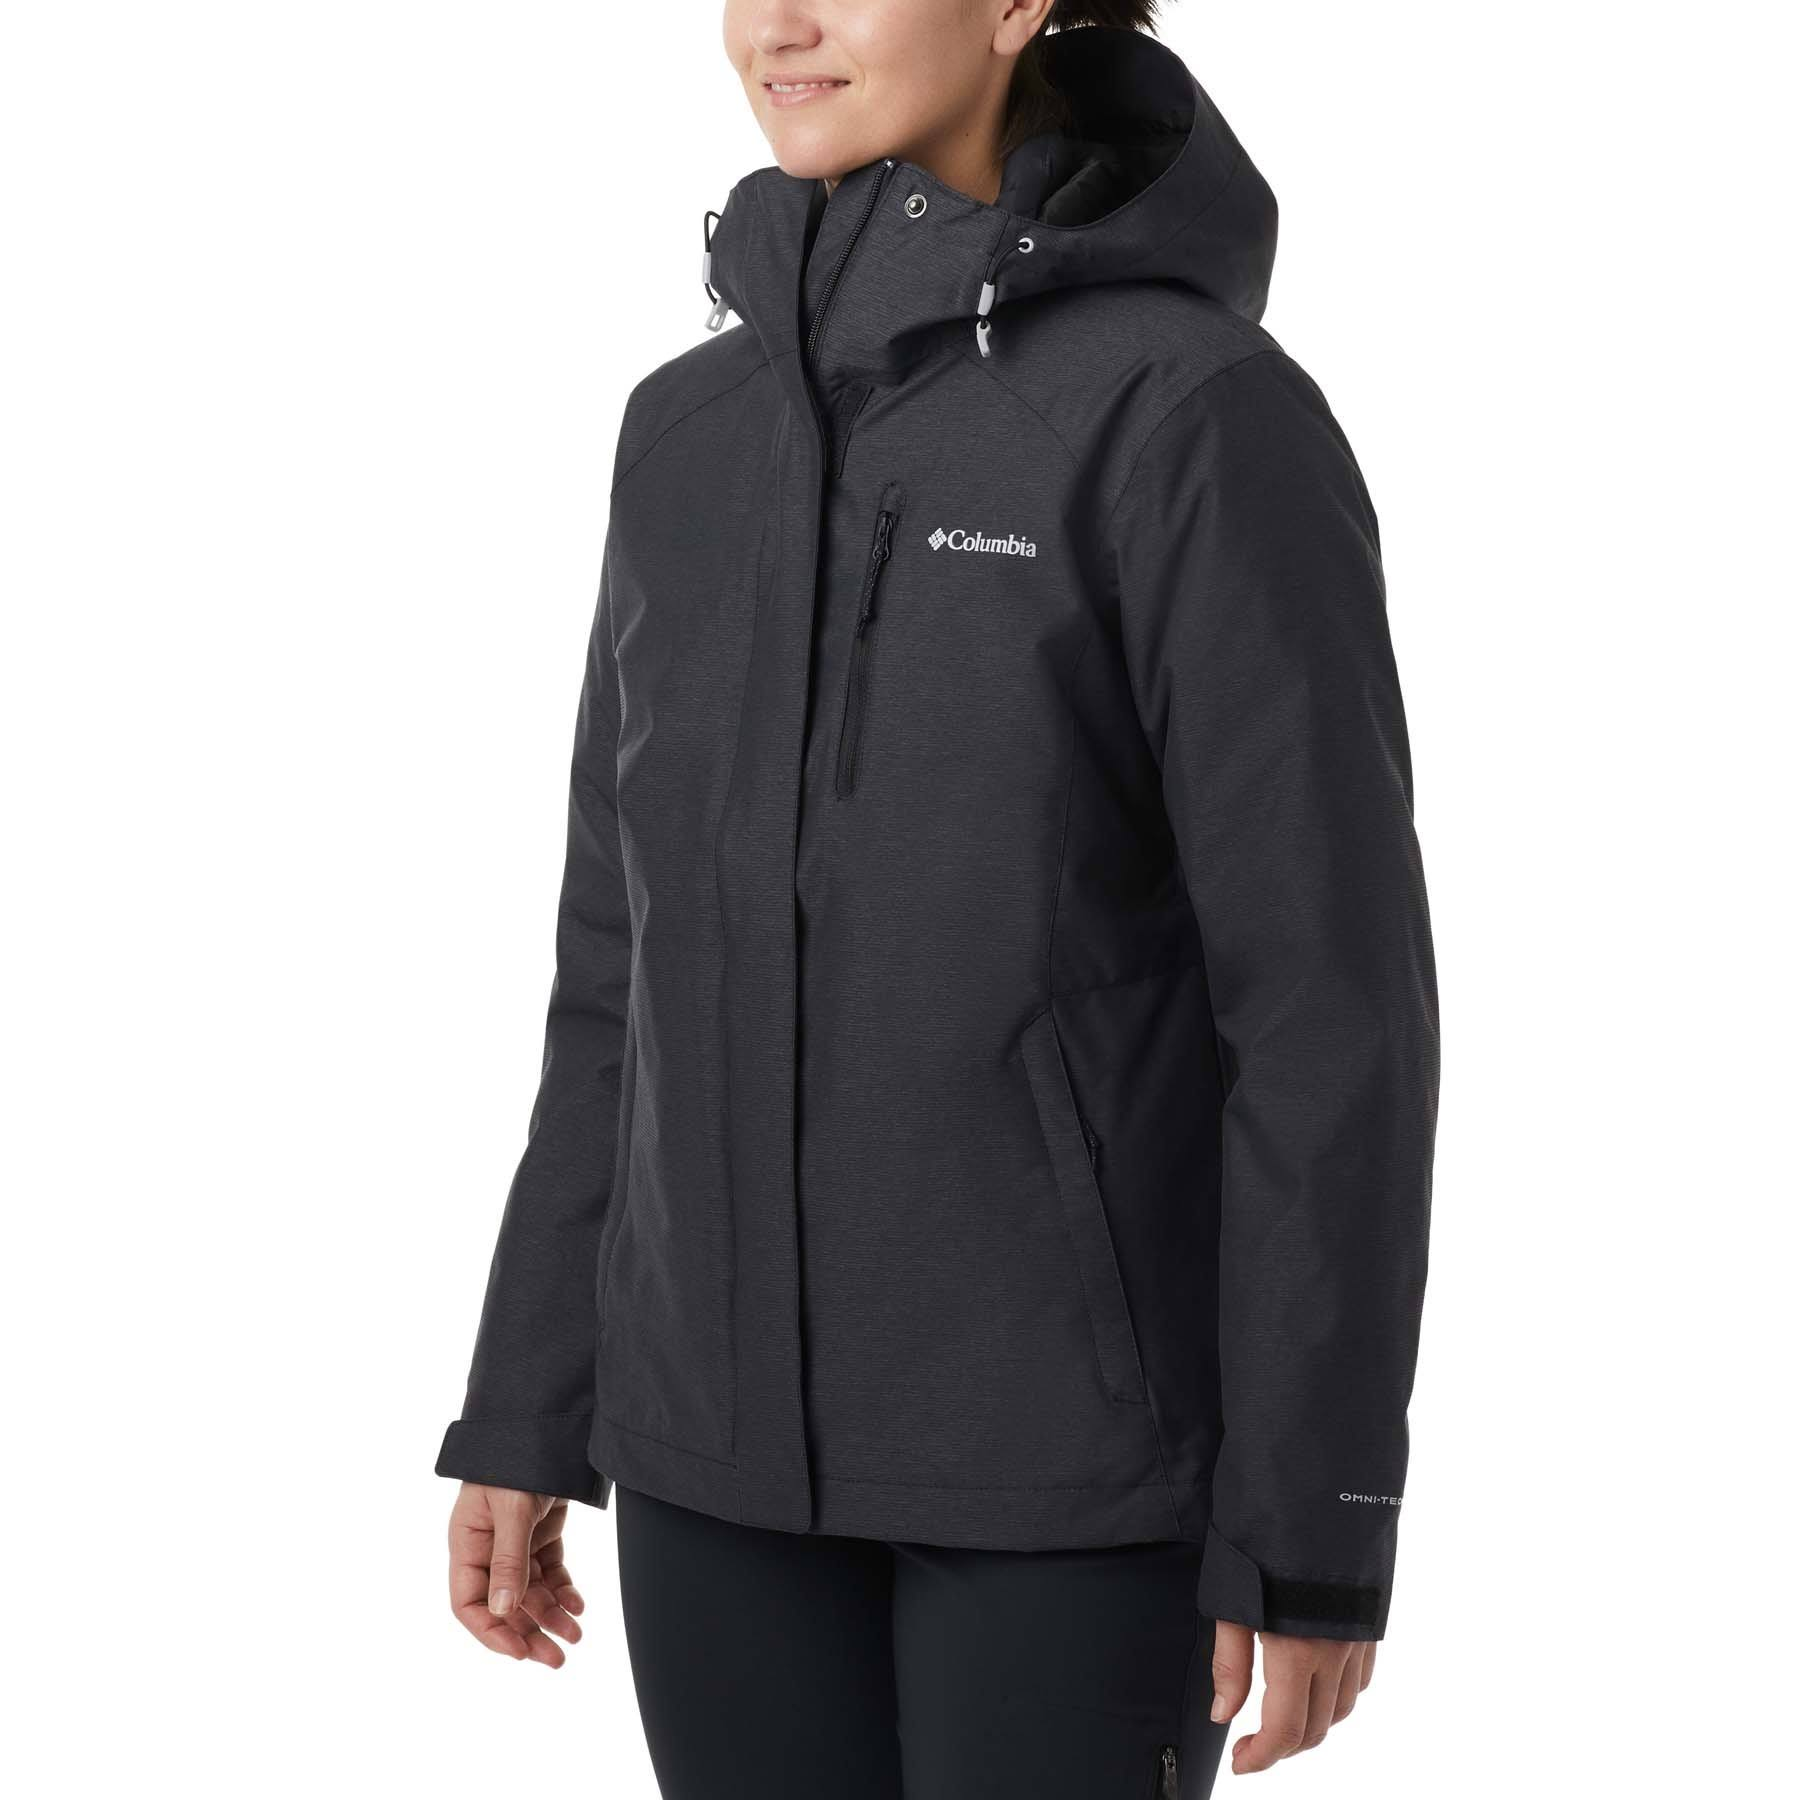 Columbia Women's Whirlibird IV Interchange Jacket - Black